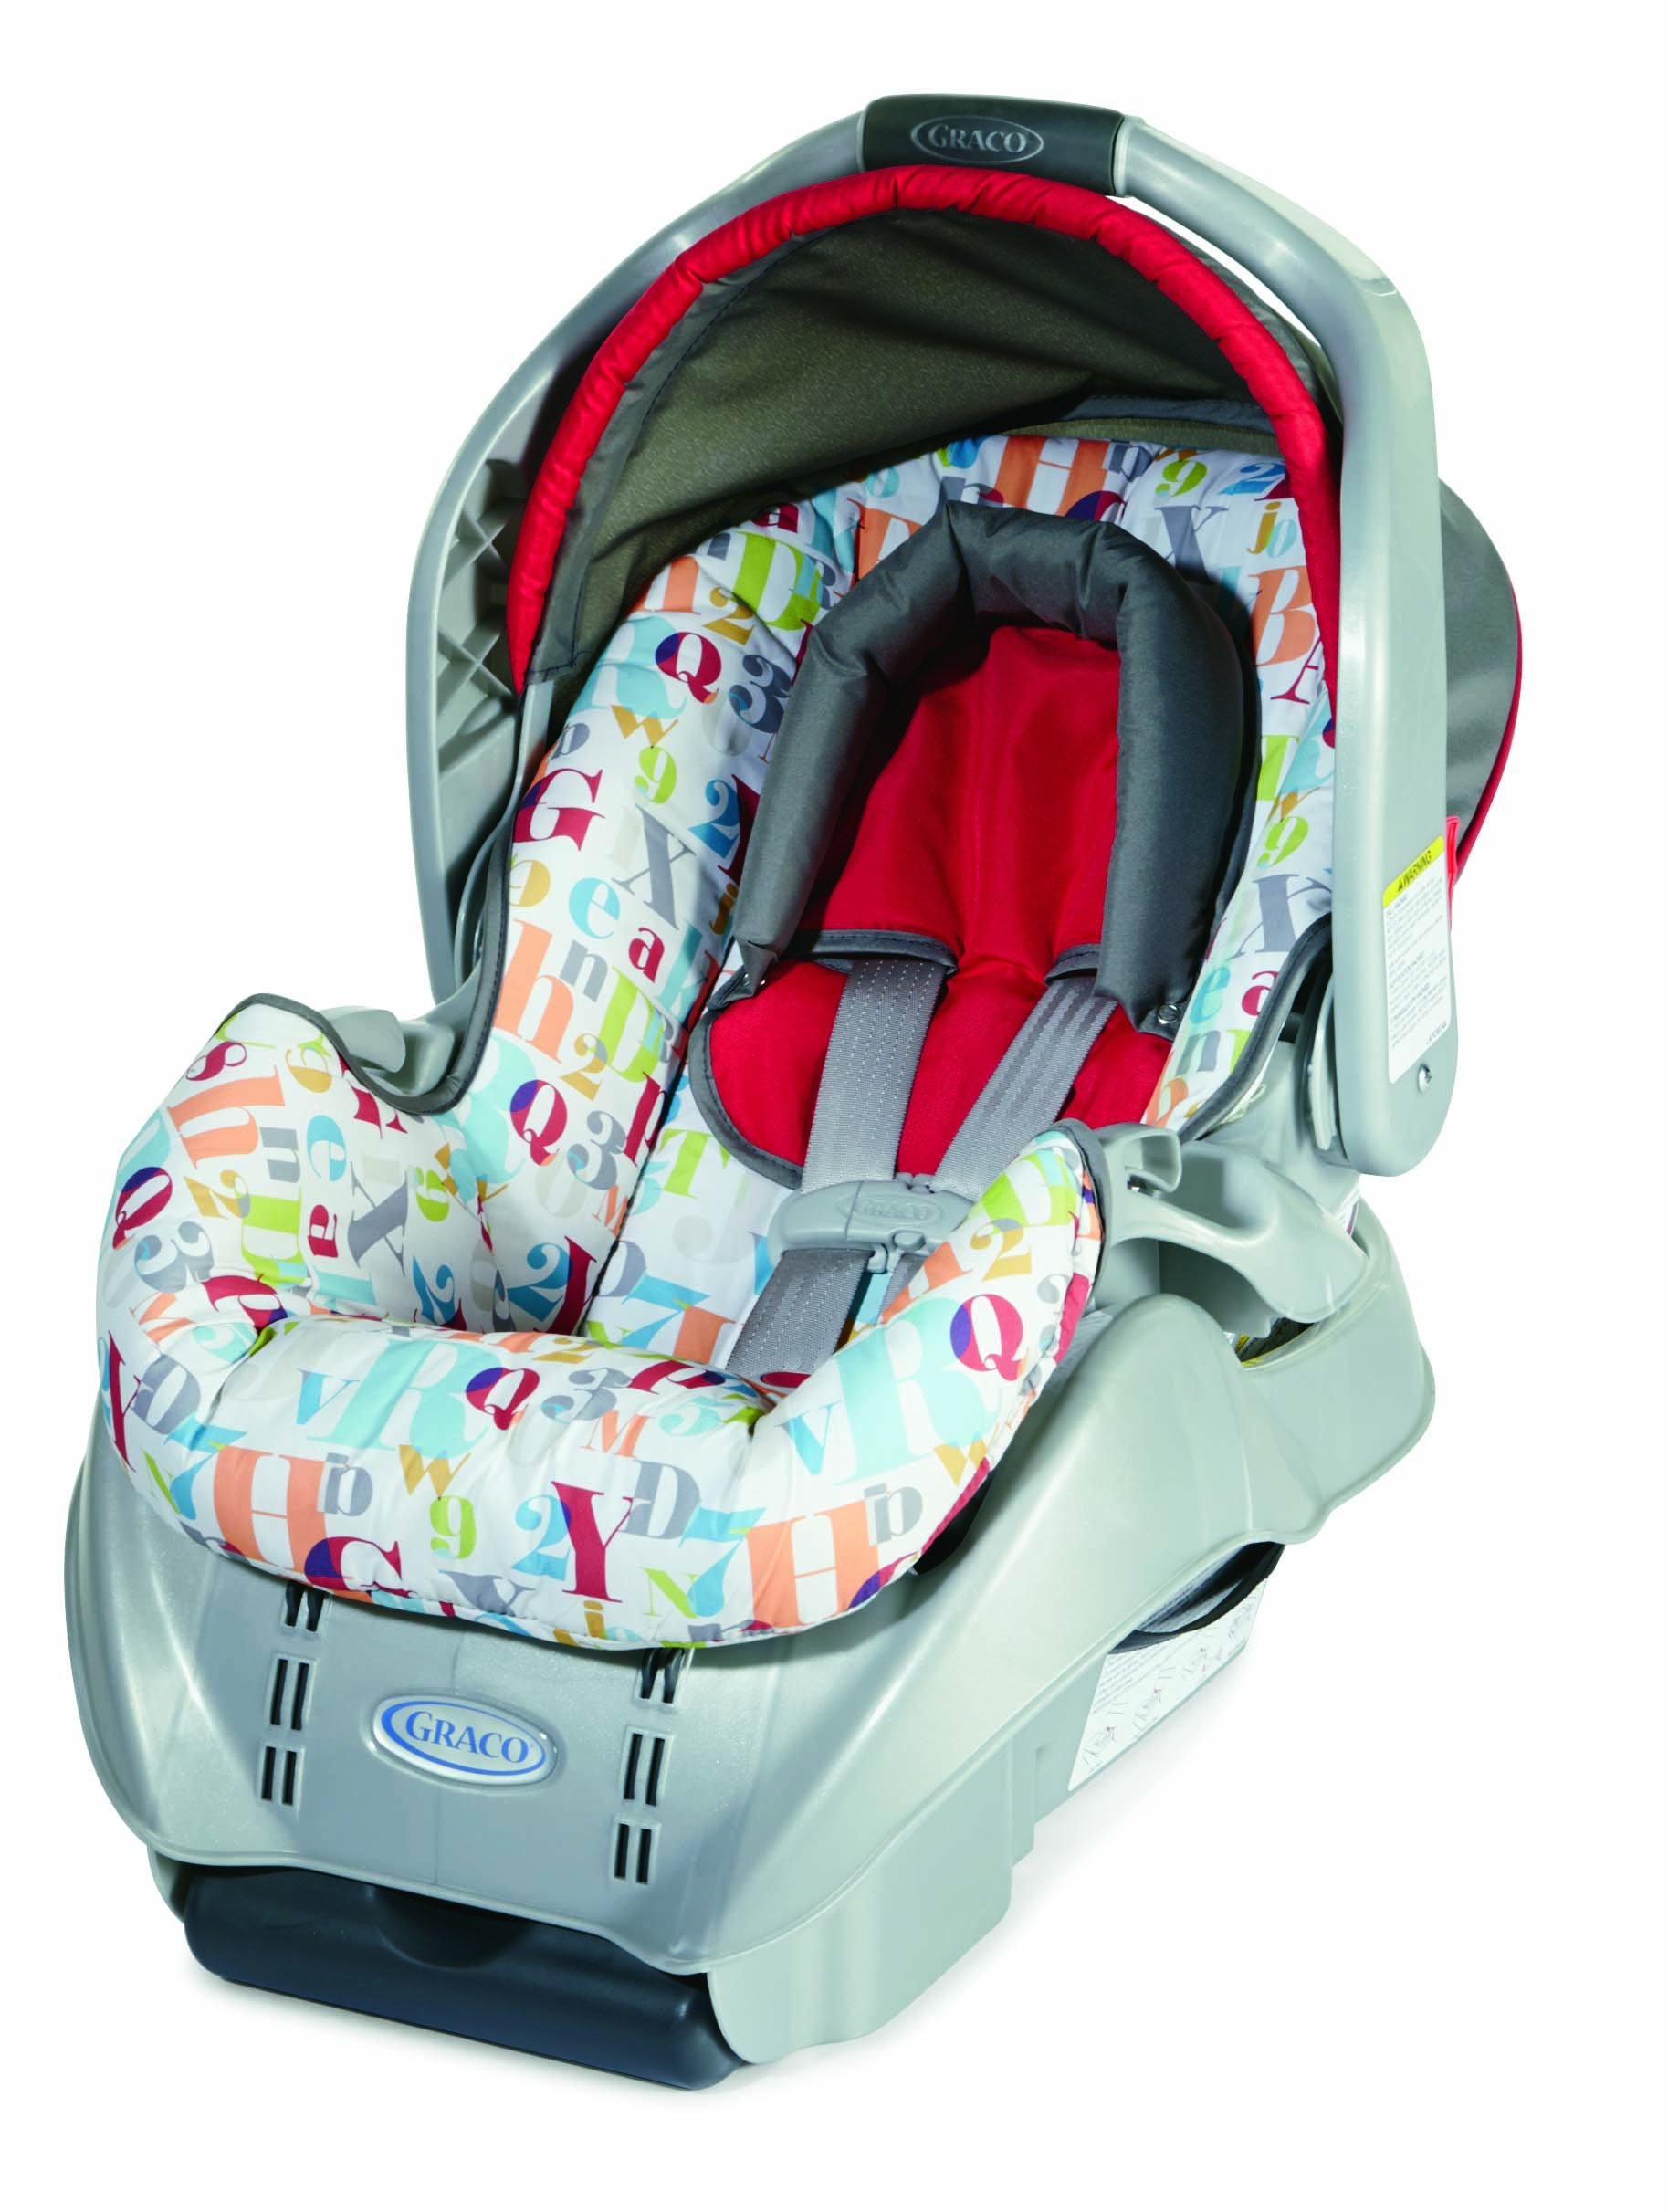 graco travel system infant car seat. Black Bedroom Furniture Sets. Home Design Ideas